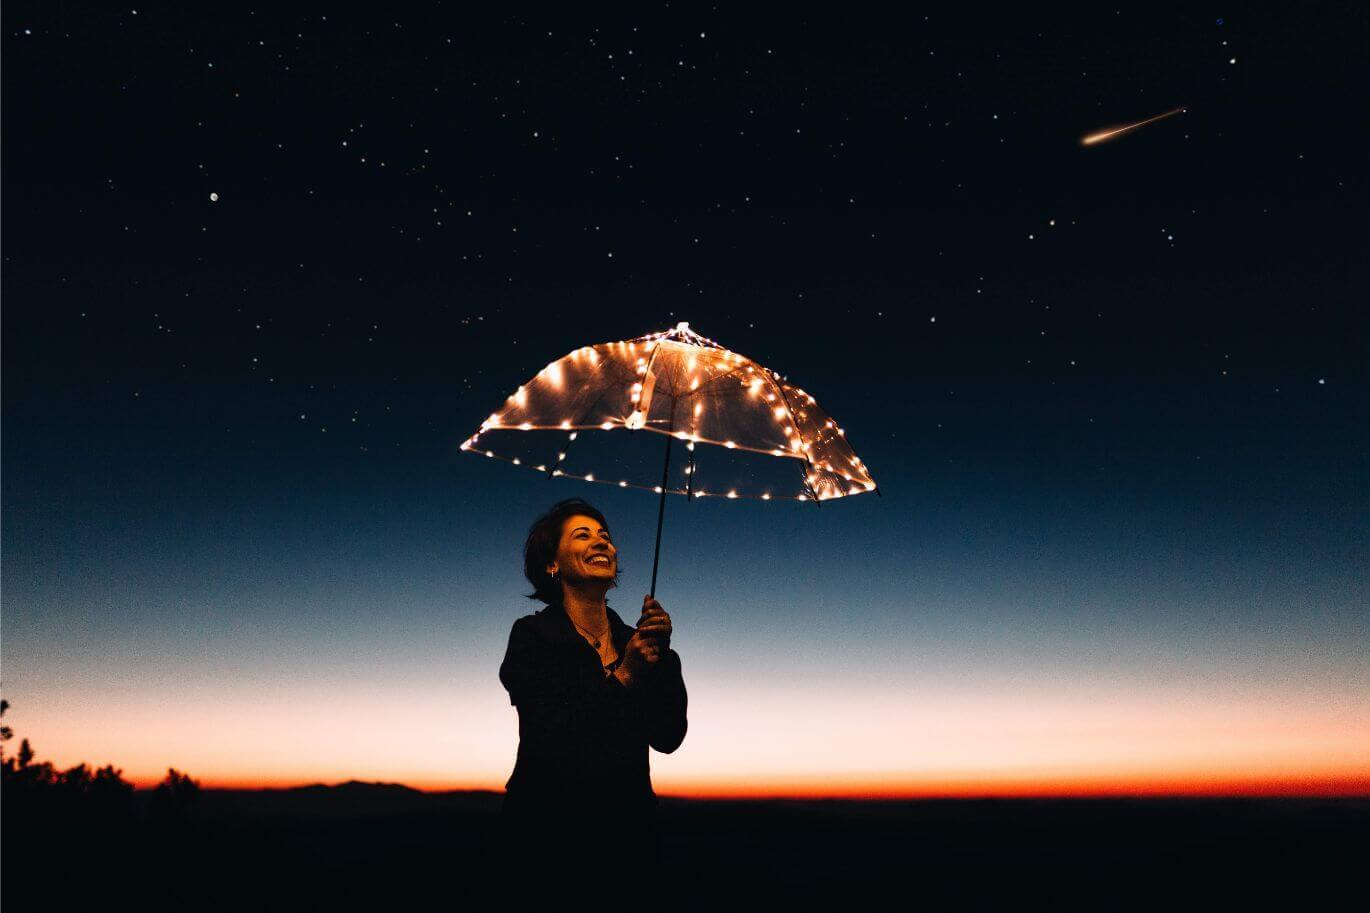 Woman with an umbrella looking to the sky filled with shooting stars